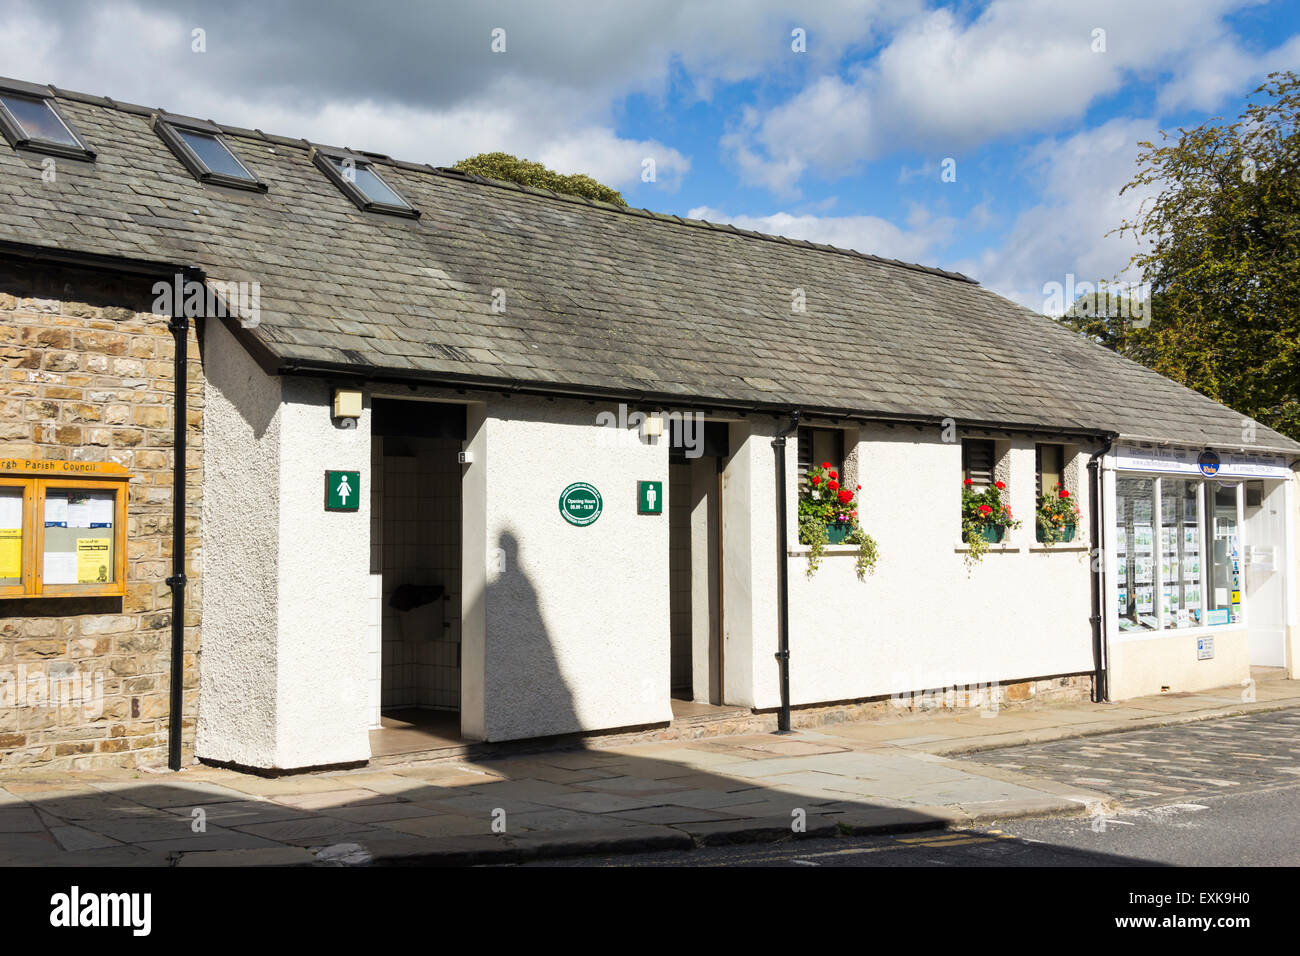 Public conveniences on Main Street, Sedbergh, Cumbria. These public toilets are provided by the Parish Council. - Stock Image